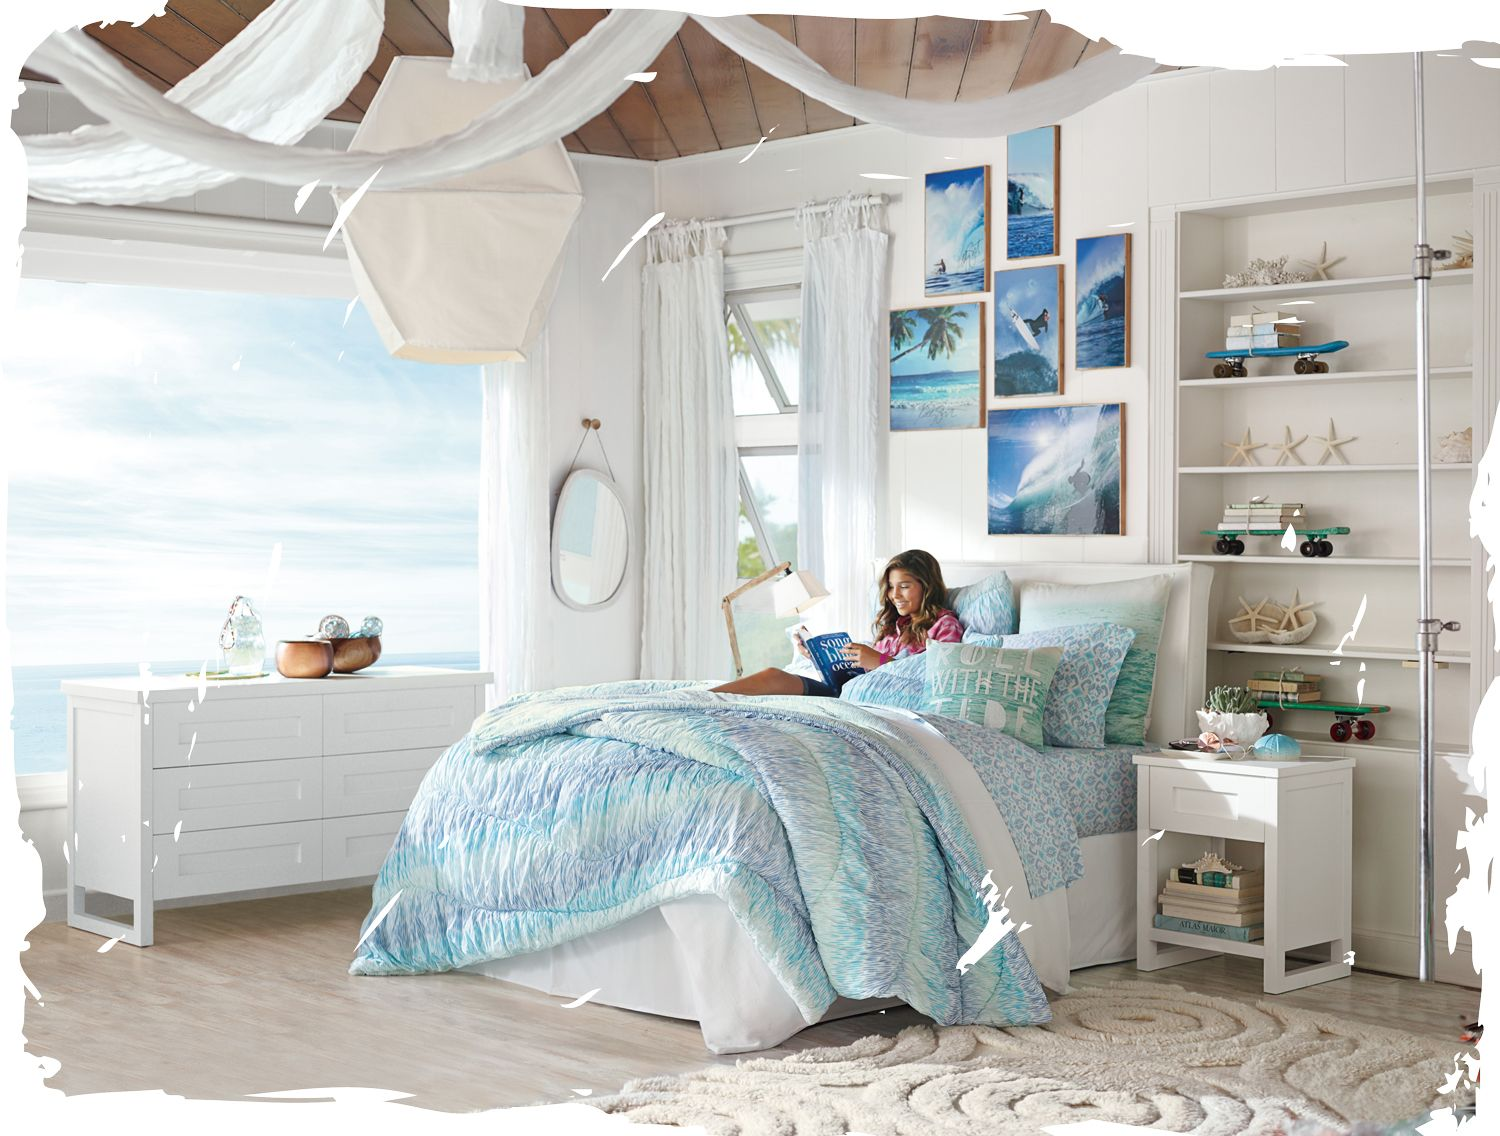 beachy bedroom furniture slater for pb teen bedroom decor inspiration 10207